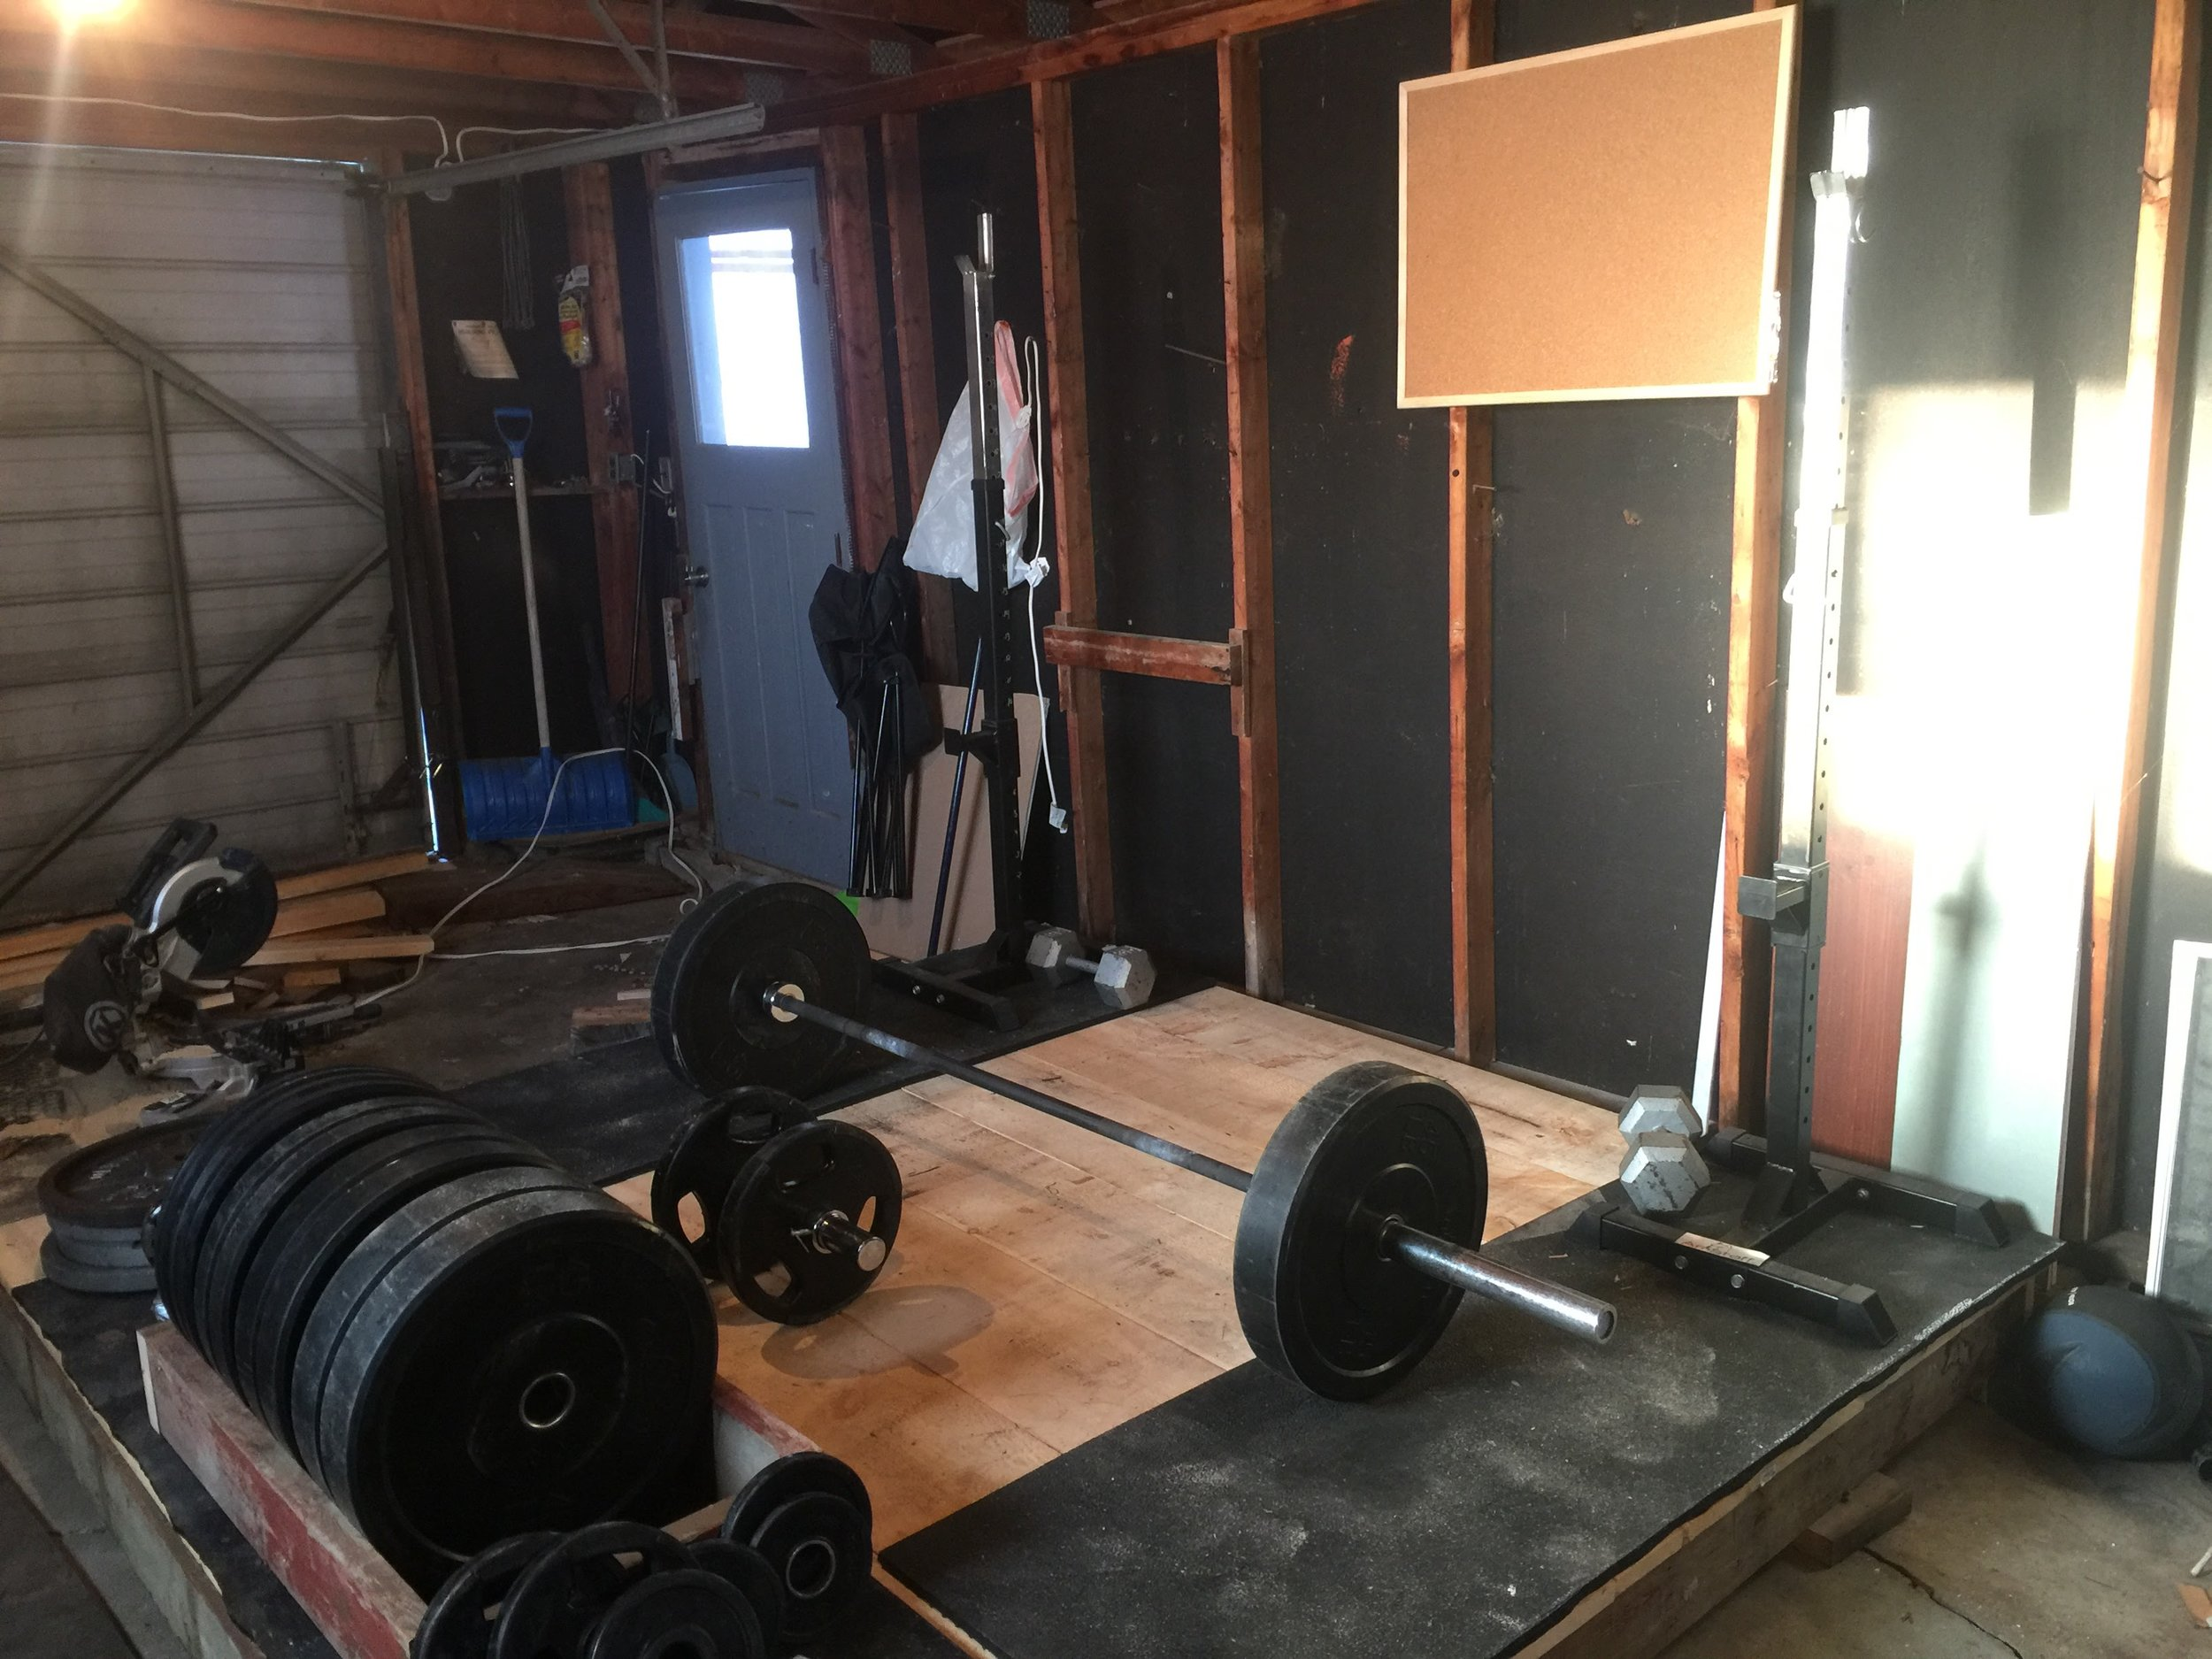 Garage Gym Humidity How To Make An Olympic Weightlifting Platform Olorin Nutrition